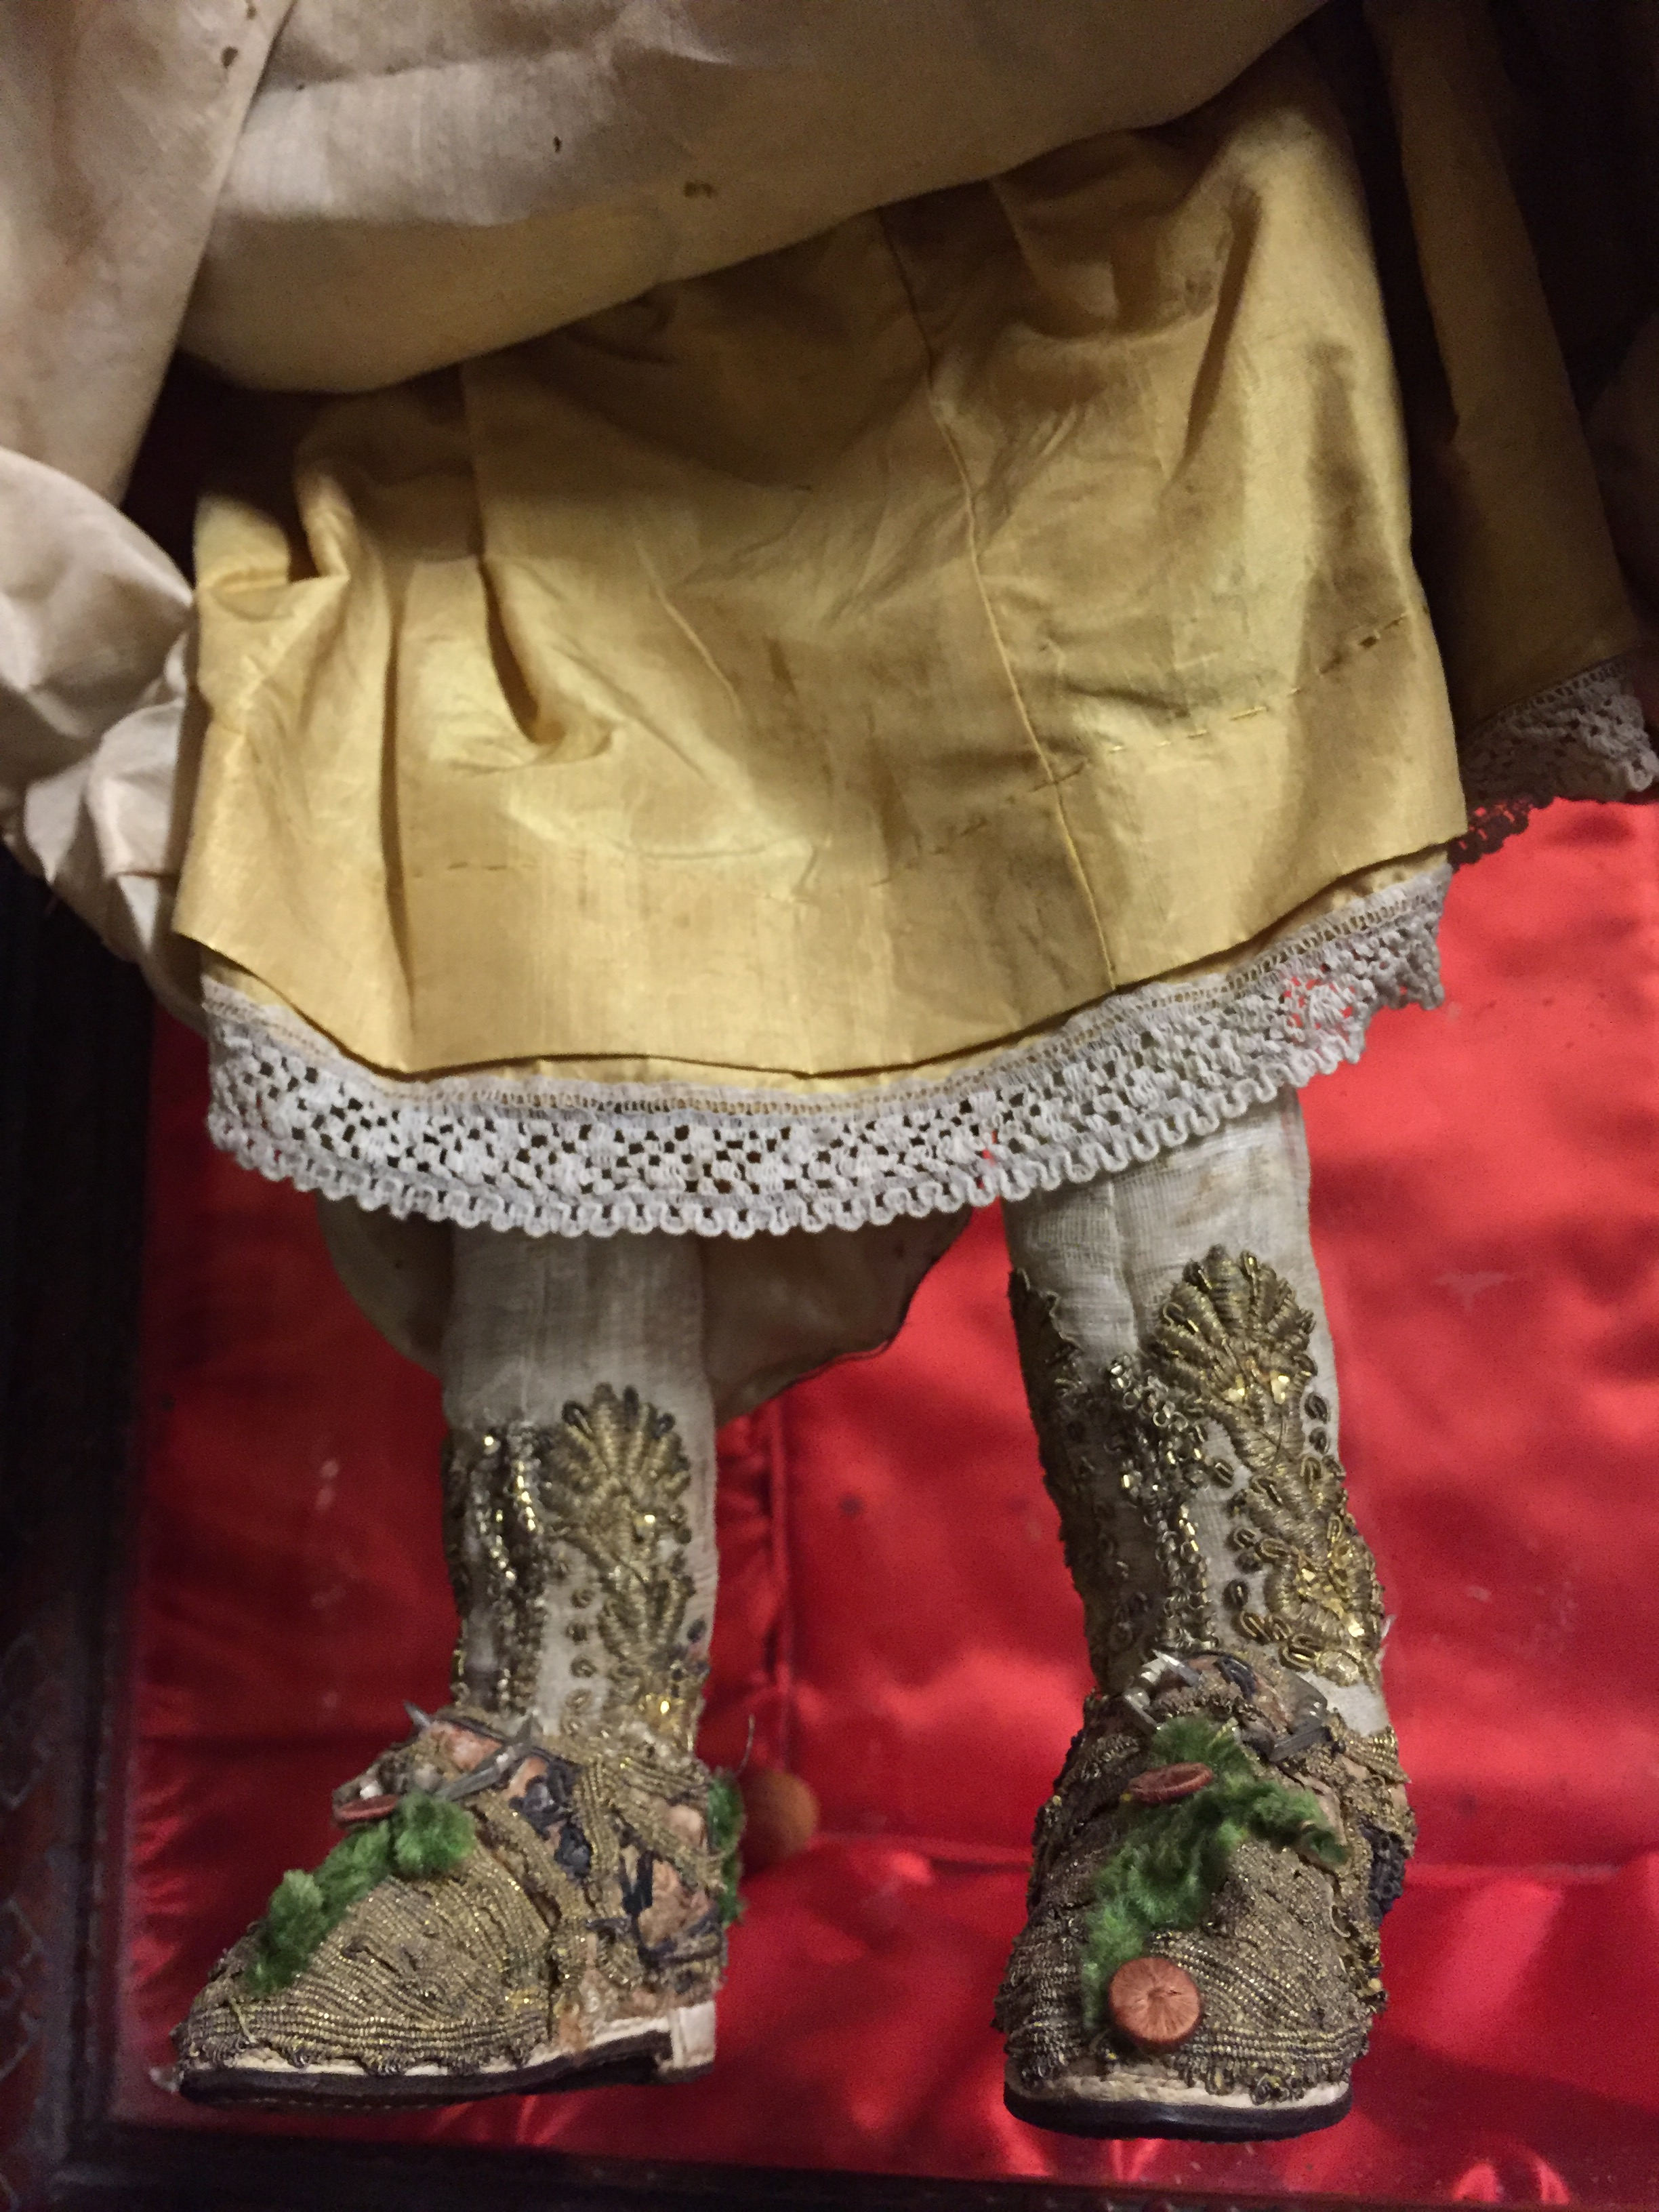 Lot 349 - A RARE AND UNUSUAL 18TH CENTURY POURED WAX DOLL Relief moulded hair and dark glass eyes, wearing a